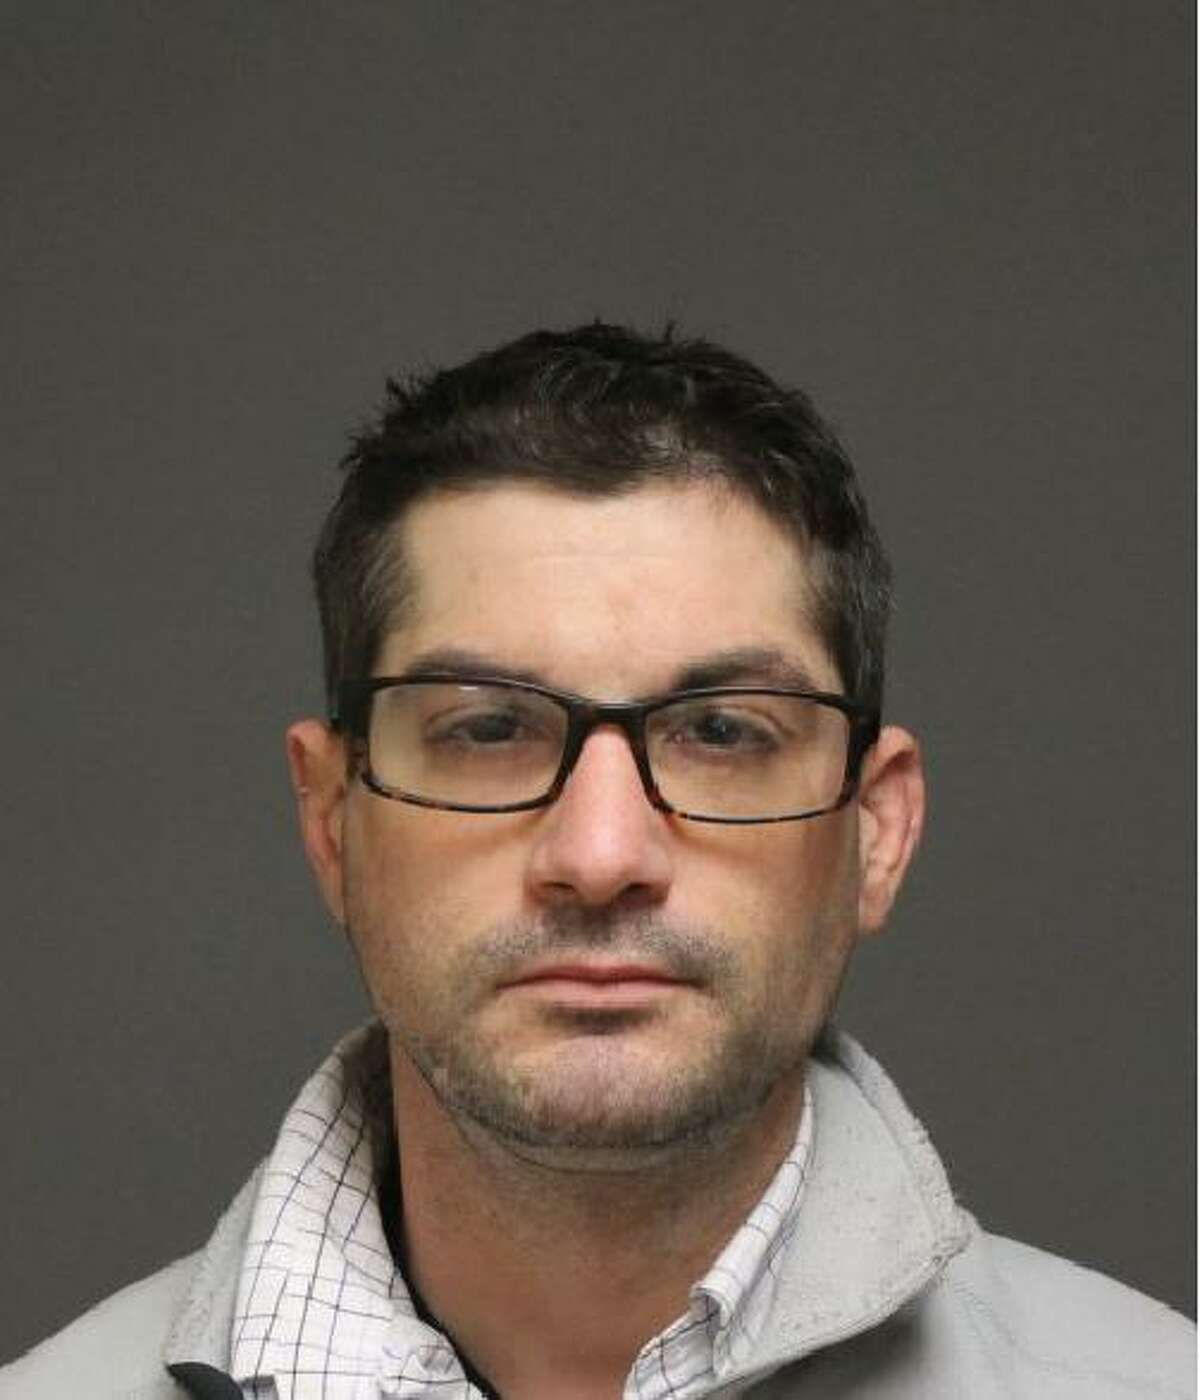 Christopher Bartmess, 35, of Fairfield, was charged with operating under the influence, narcotics possession and use and possession of drug paraphernalia in Fairfield, Conn. on Dec. 14, 2016.